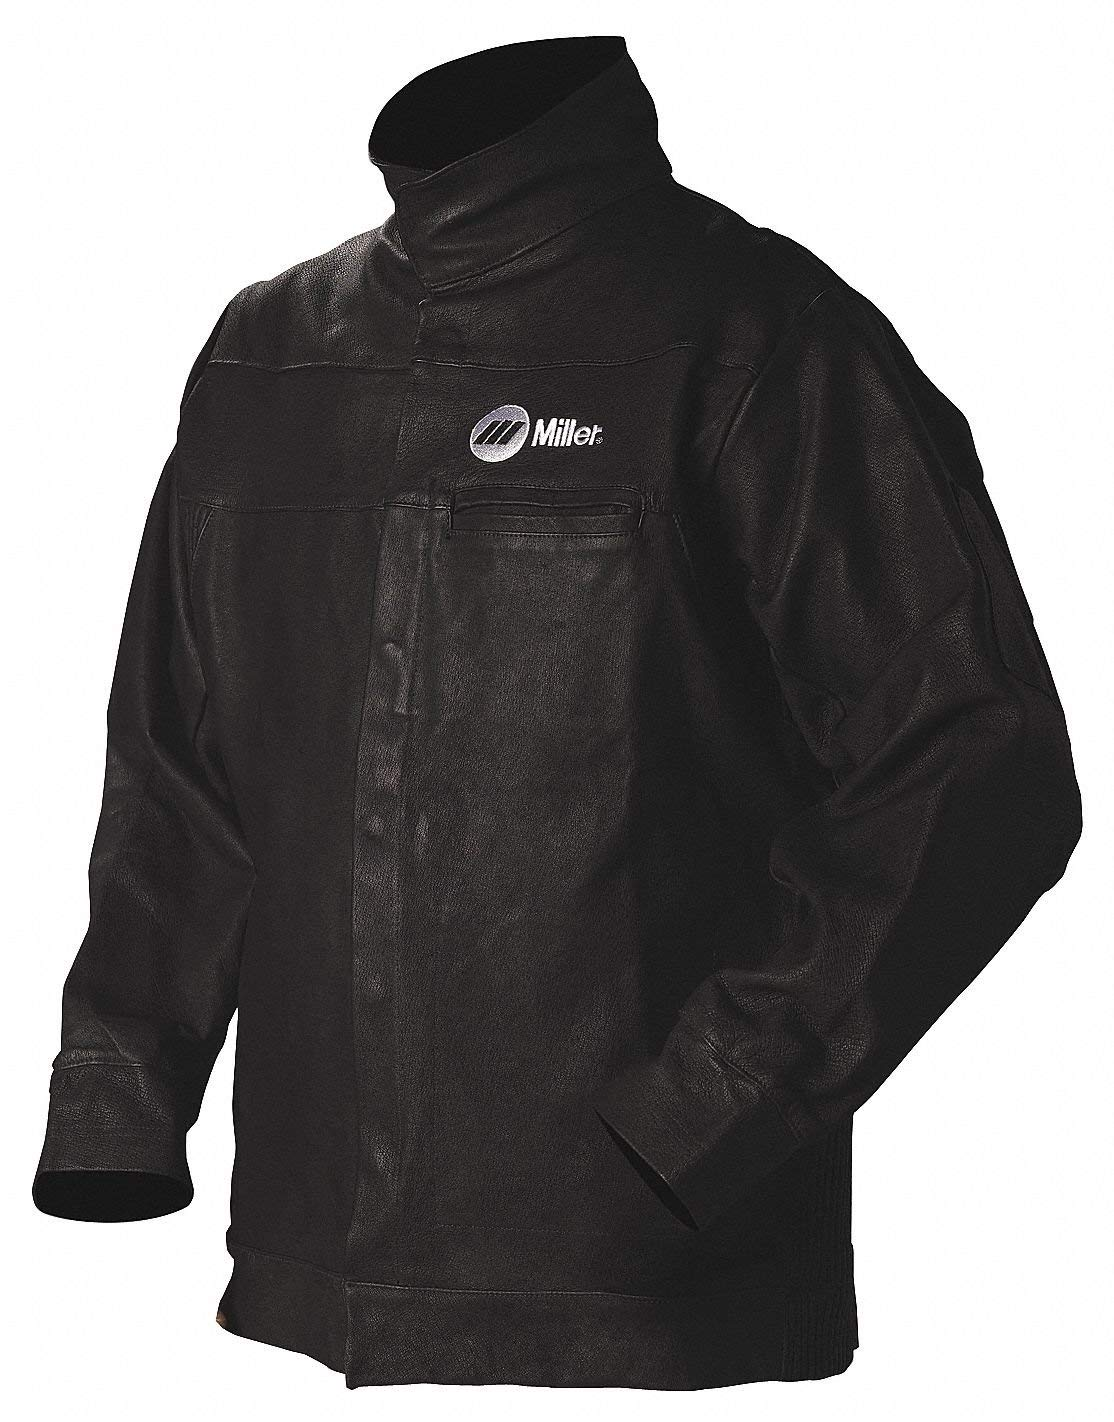 ee56bc929c2 Get Quotations · Black Pigskin Leather Welding Jacket, Size: Large, 30